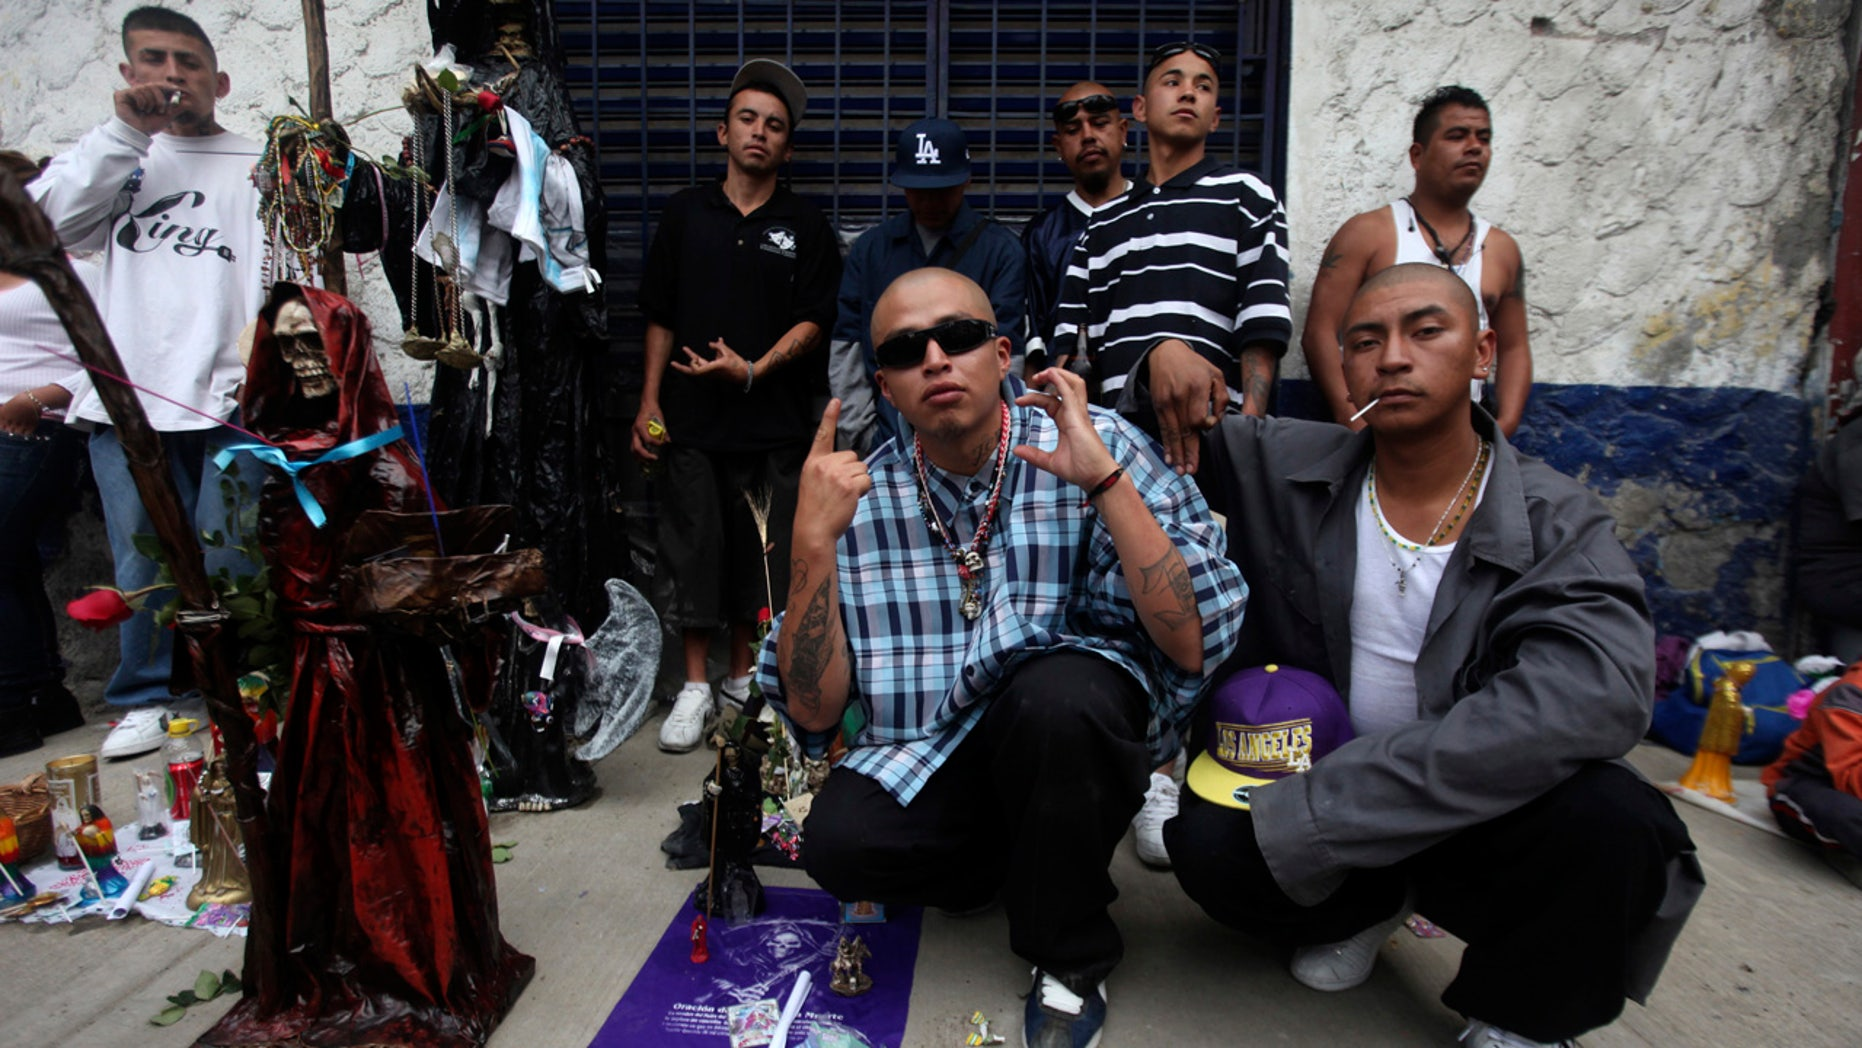 Followers of La Santa Muerte, a cult figure often depicted as a skeletal grim reaper, gesture while posing at the saint's altar in a Mexico City neighborhood.